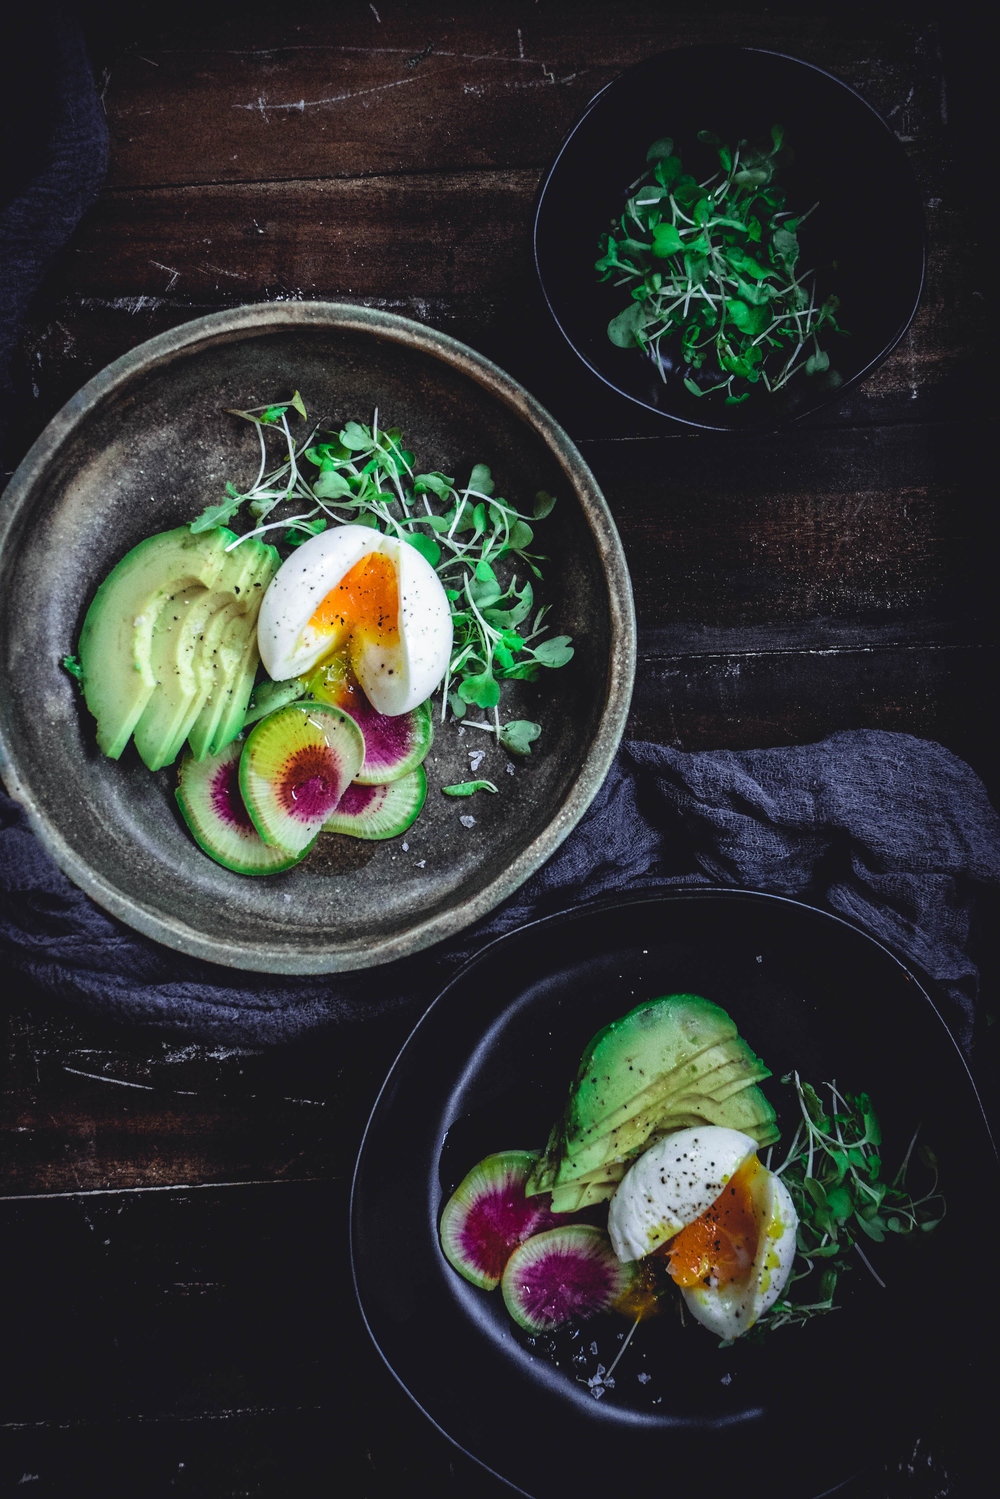 soft boiled eggs with watermelon radish, avocado and greens